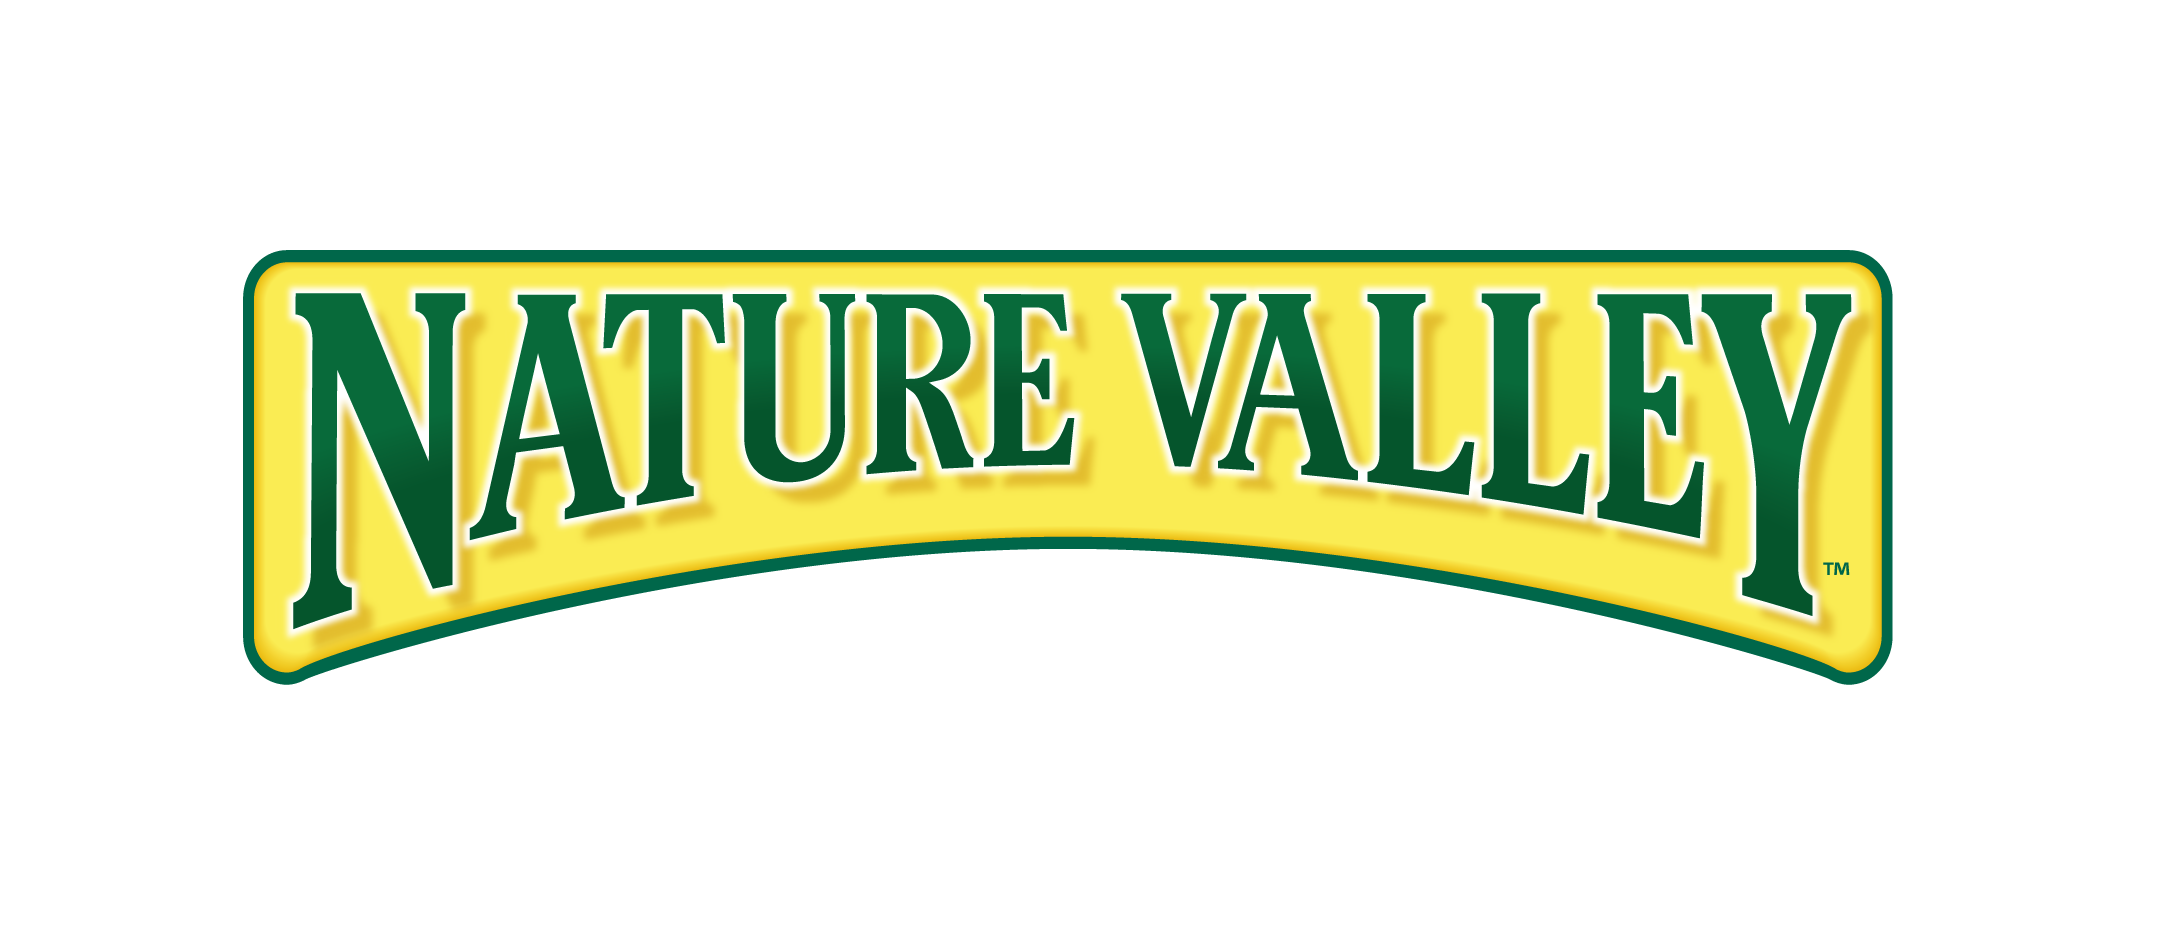 Nature valley logo png. Free design astonishing for